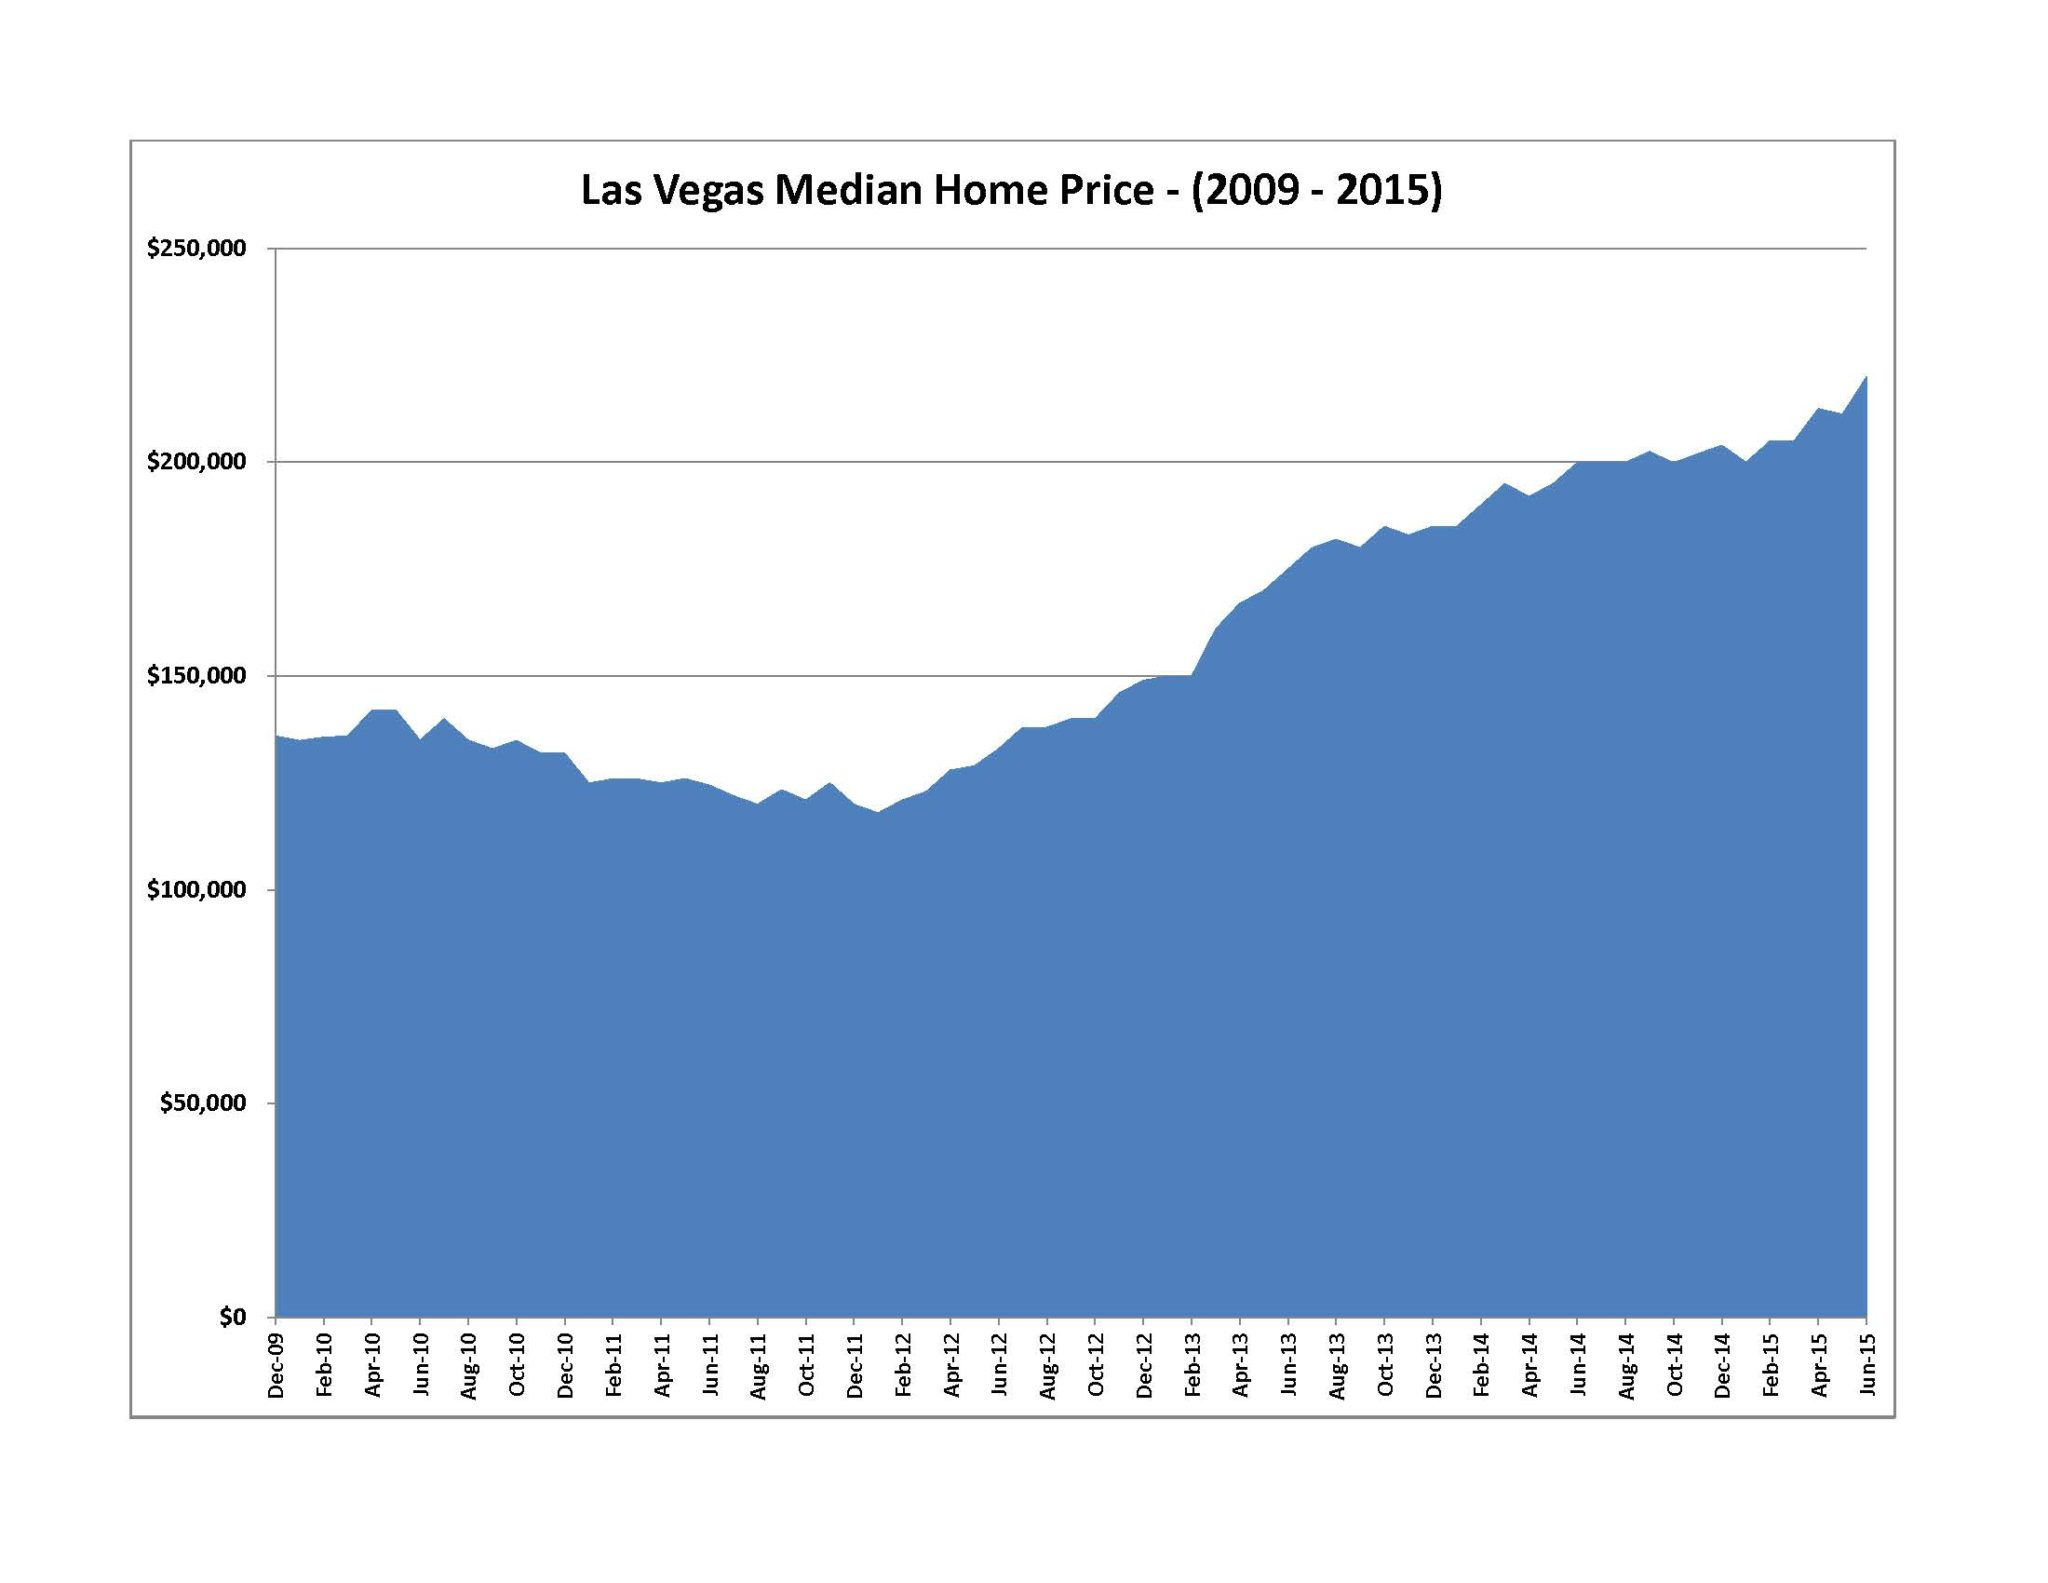 Las Vegas Median Home Price - (2009 -2015)